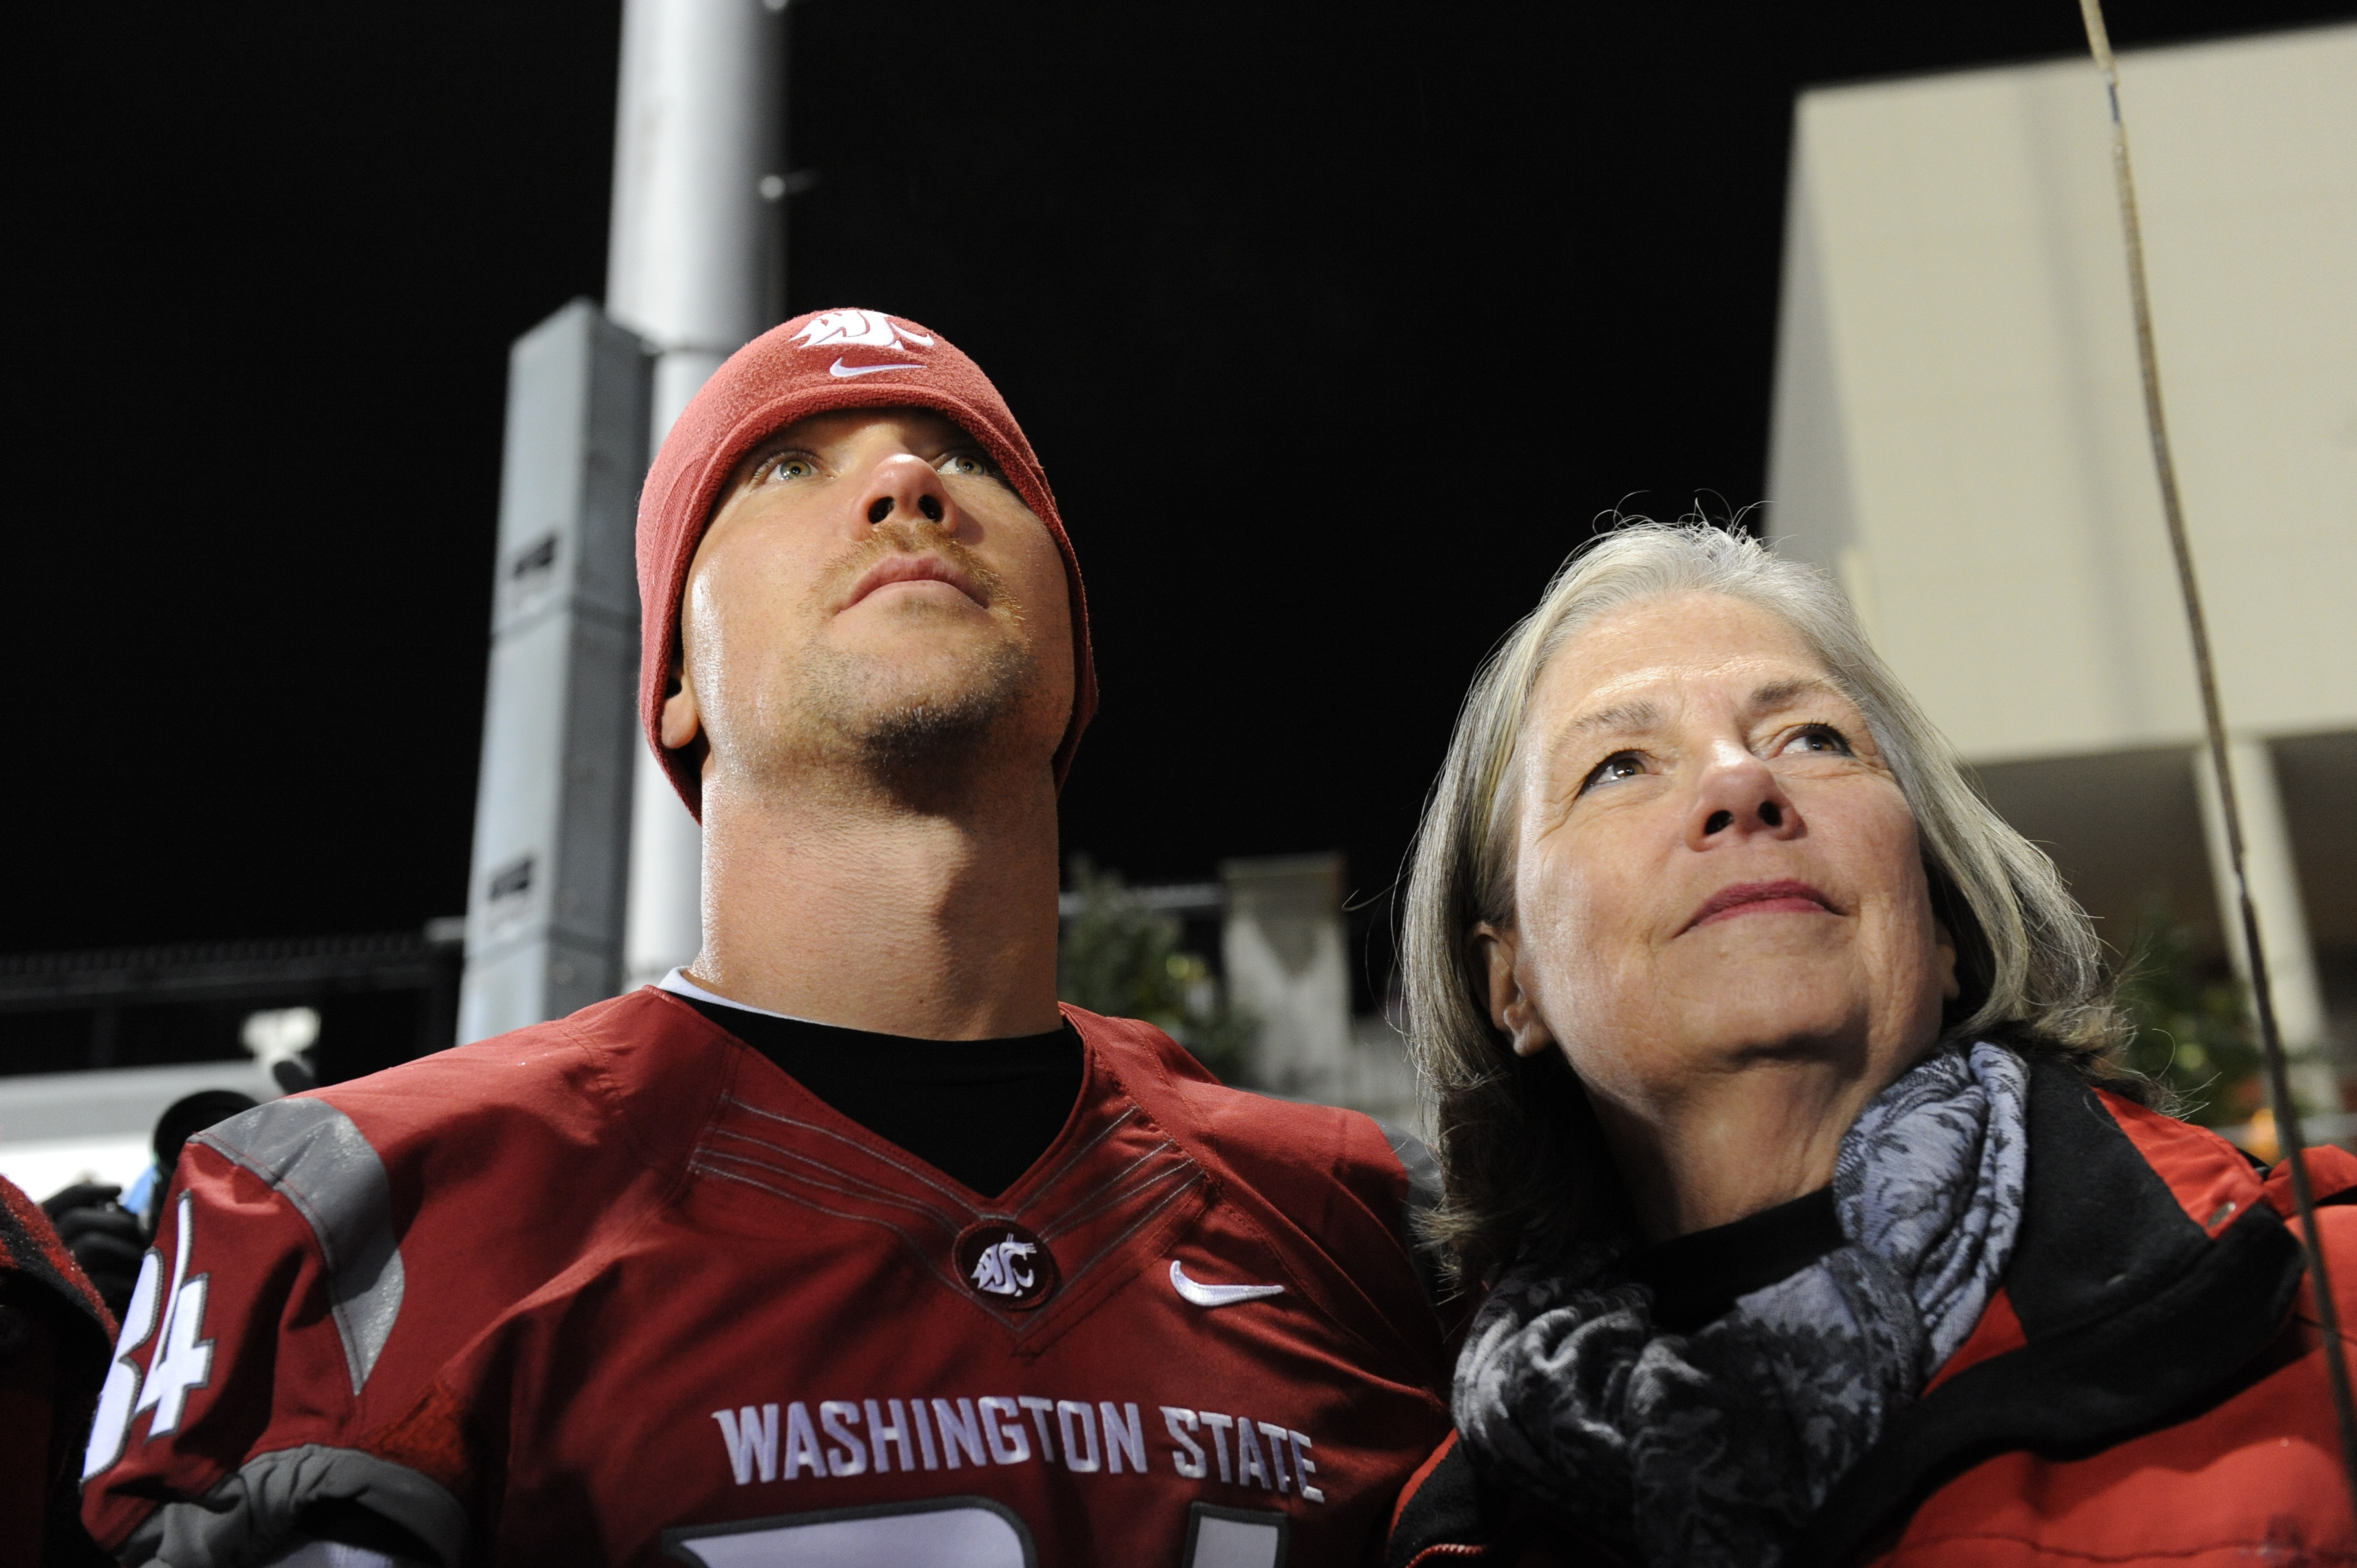 Gail Gleason, and a host of helpers, are continuing the fight against ALS on behalf of her son, Steve. / Washington State University